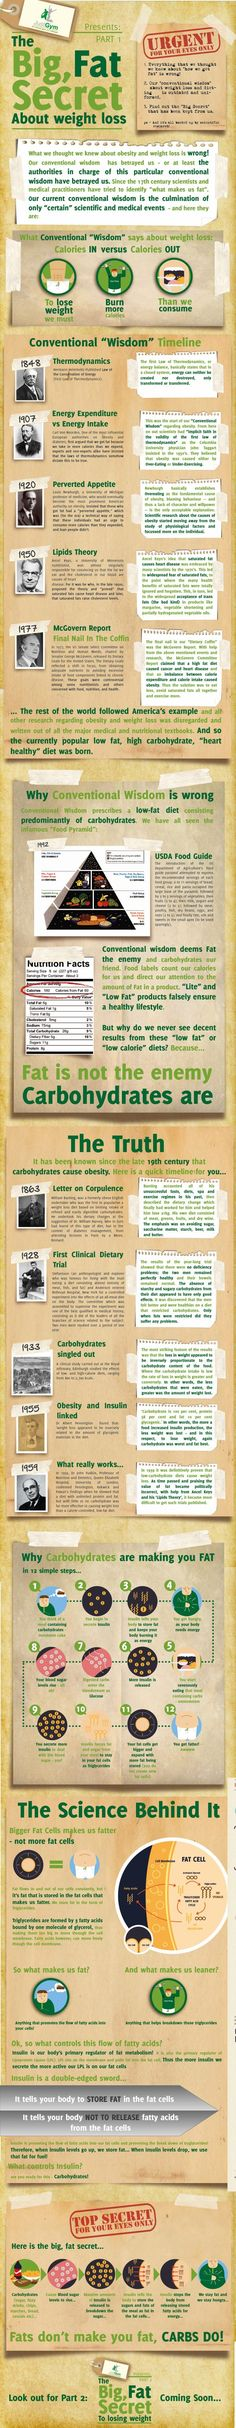 What I teach clients: Fat does not make you fat, carbohydrates do.  I don't advocate a carb free diet but one can be extremely successful removing simple carbohydrates and grains from one's diet.